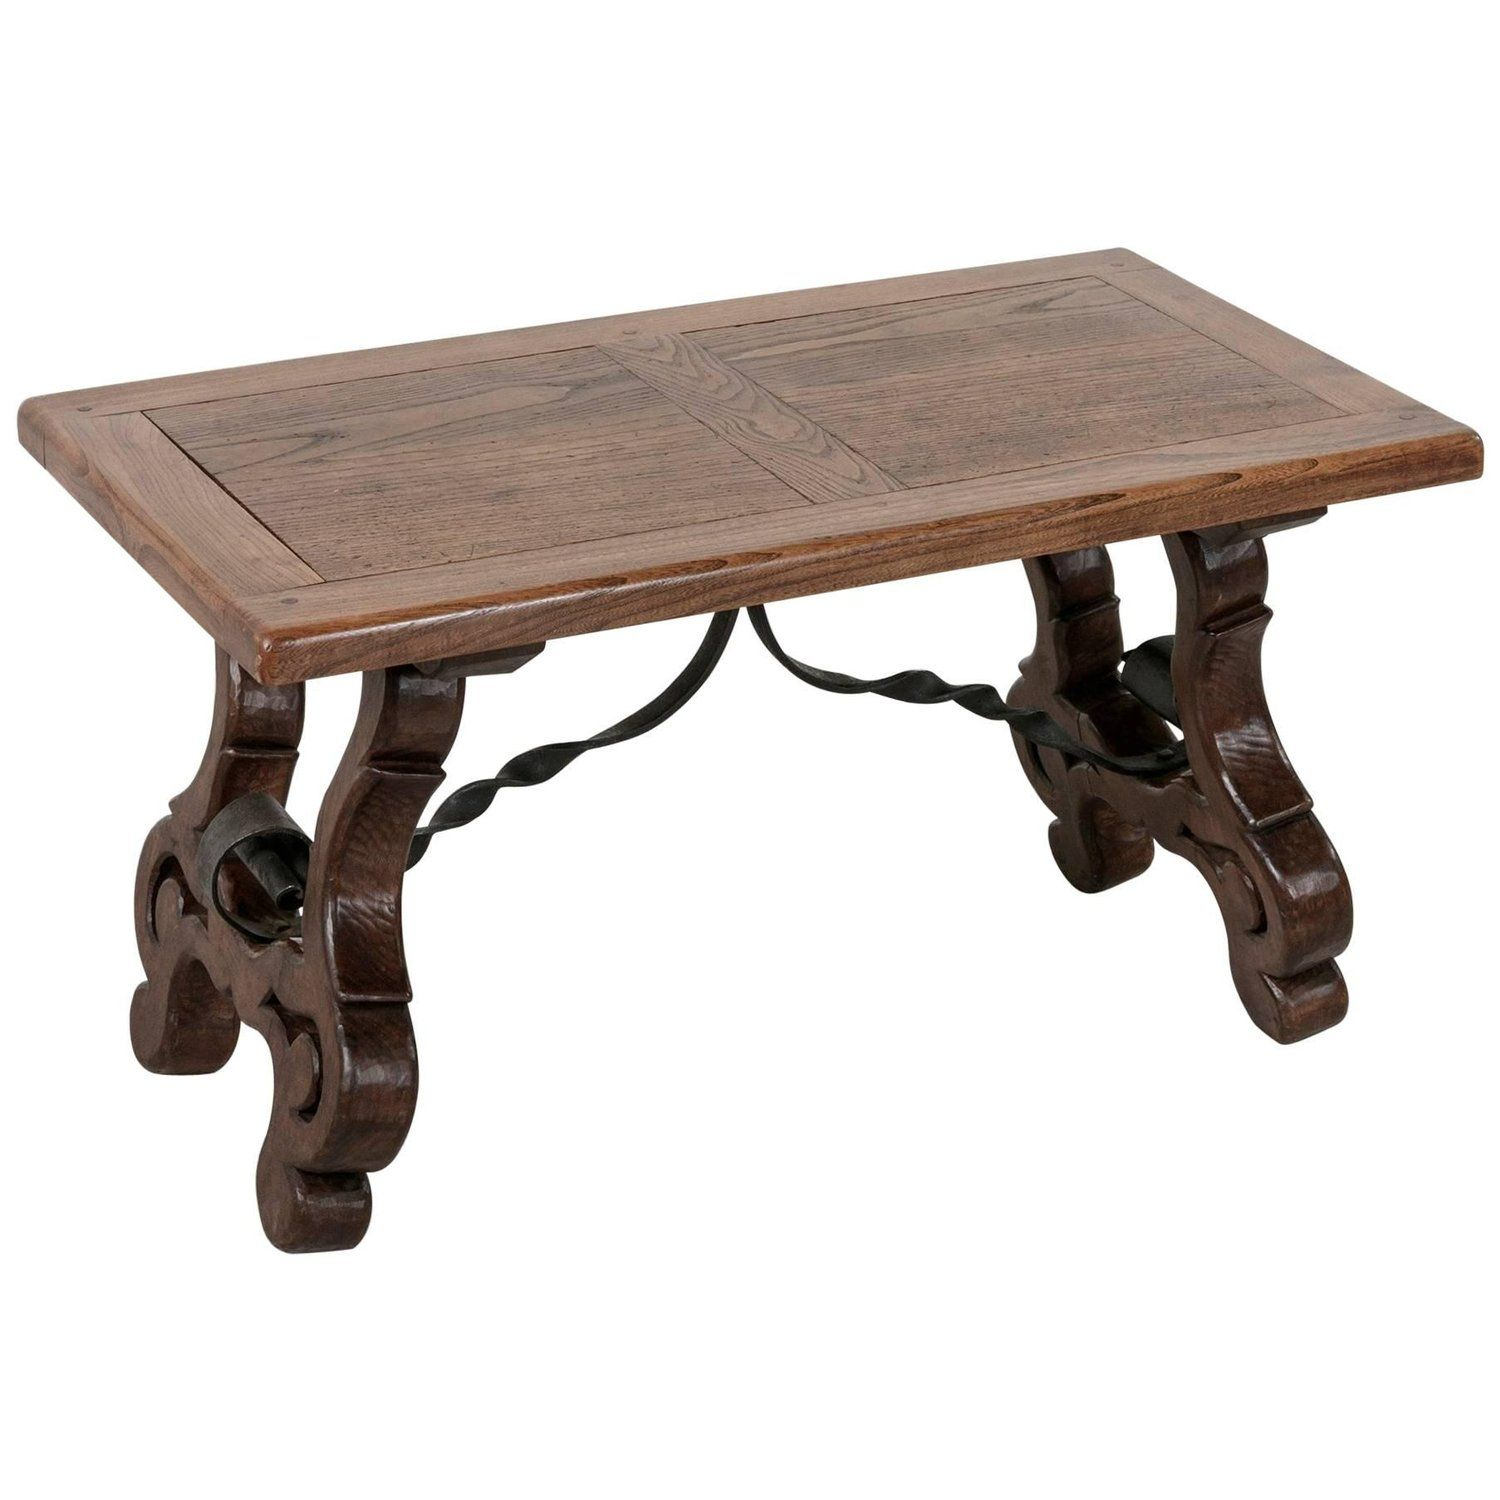 Early 20th Century Spanish Style Oak Coffee Table Or Bench With